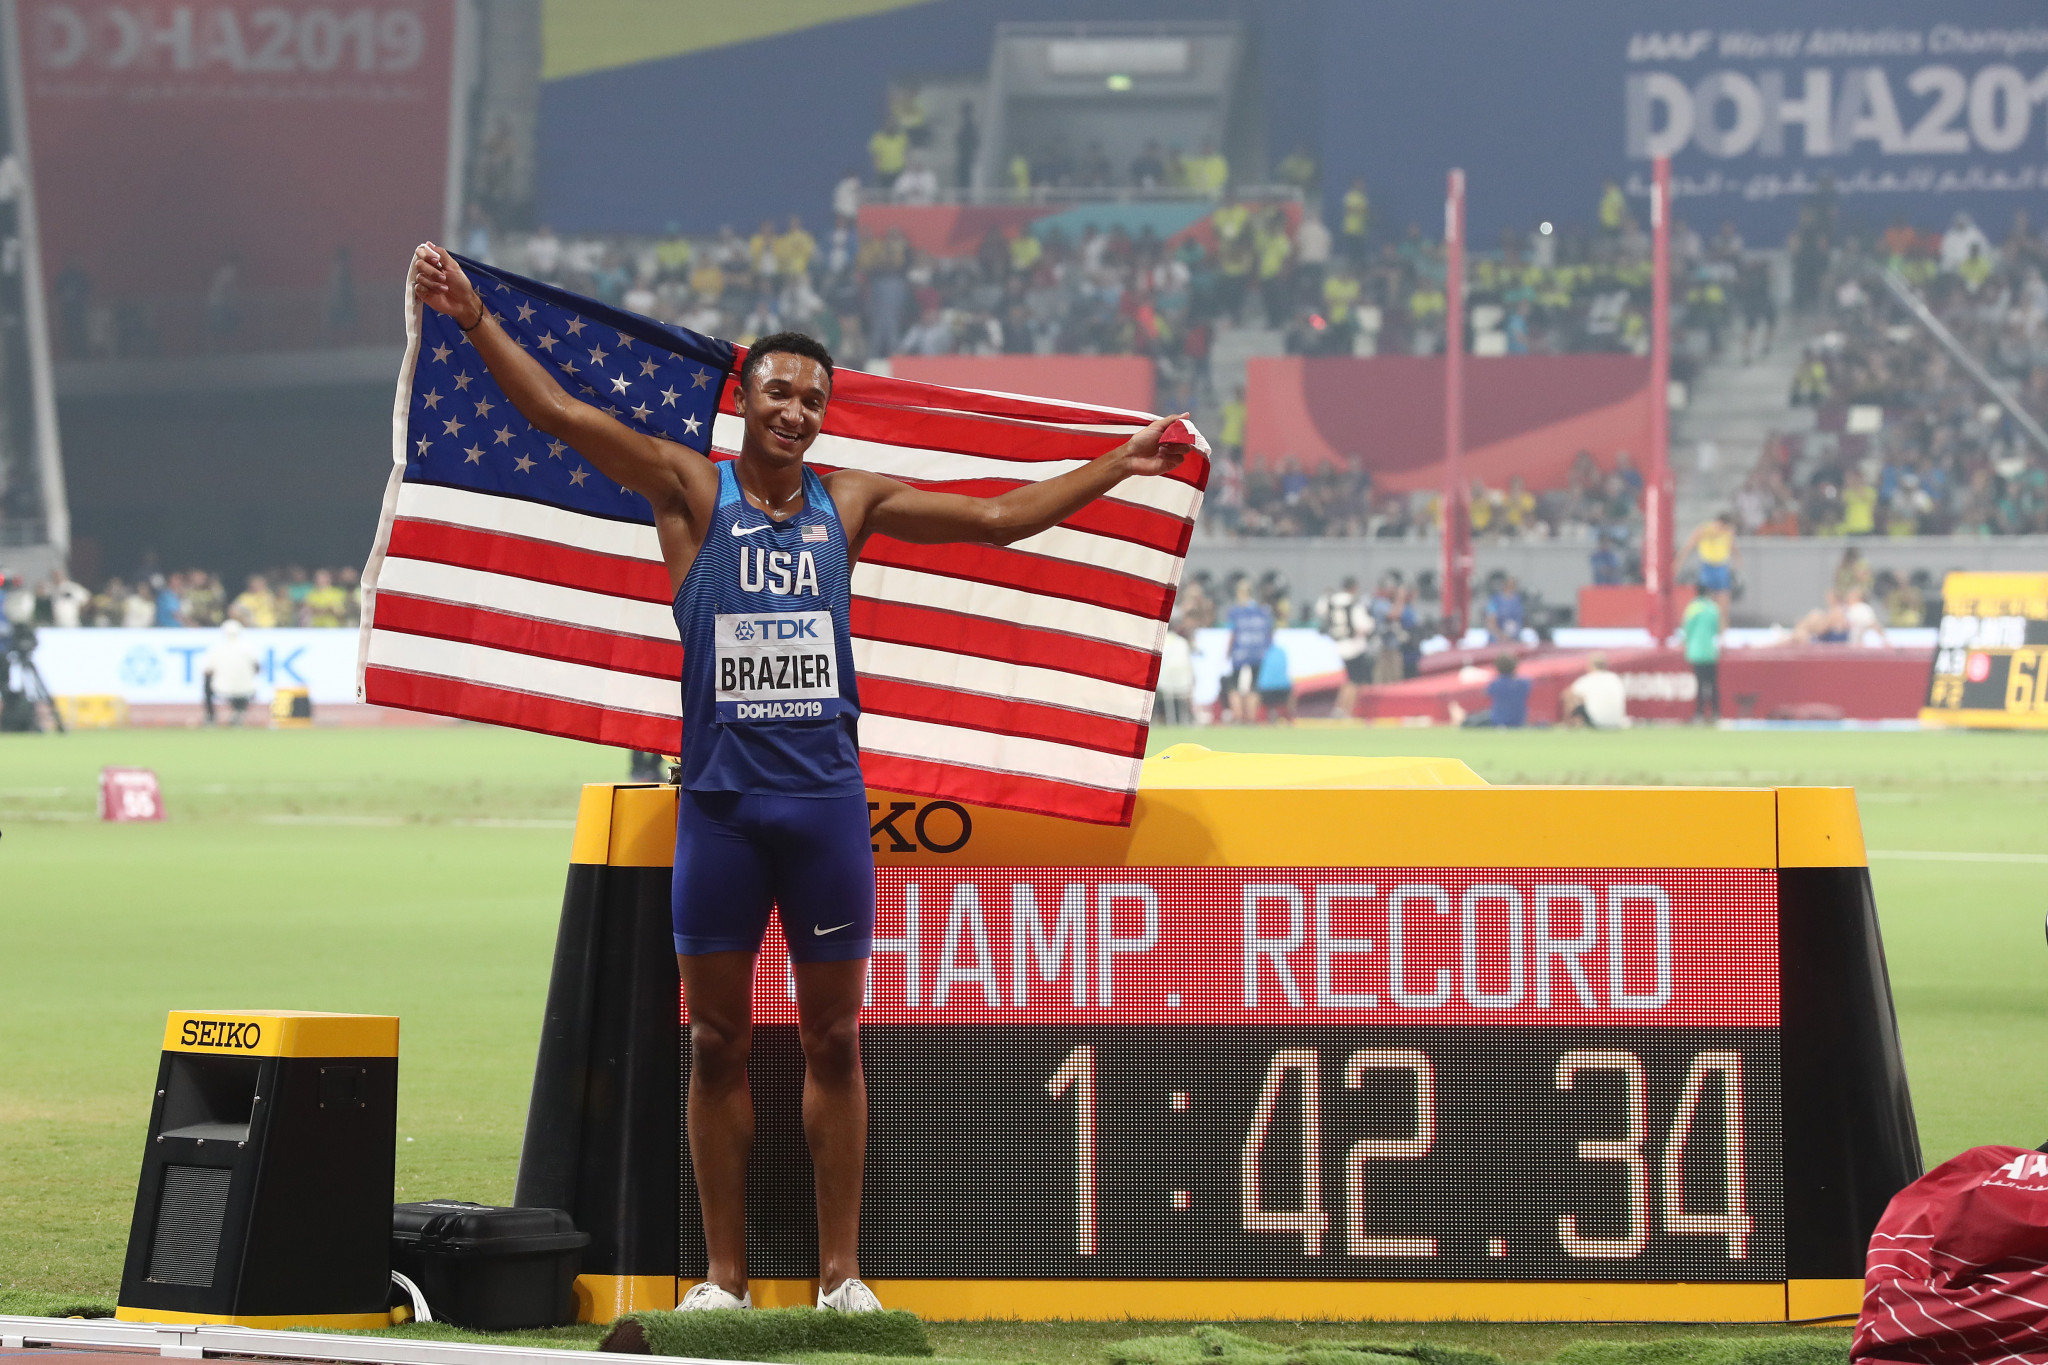 US win three golds at IAAF World Championships as Brazier ignores Salazar controversy